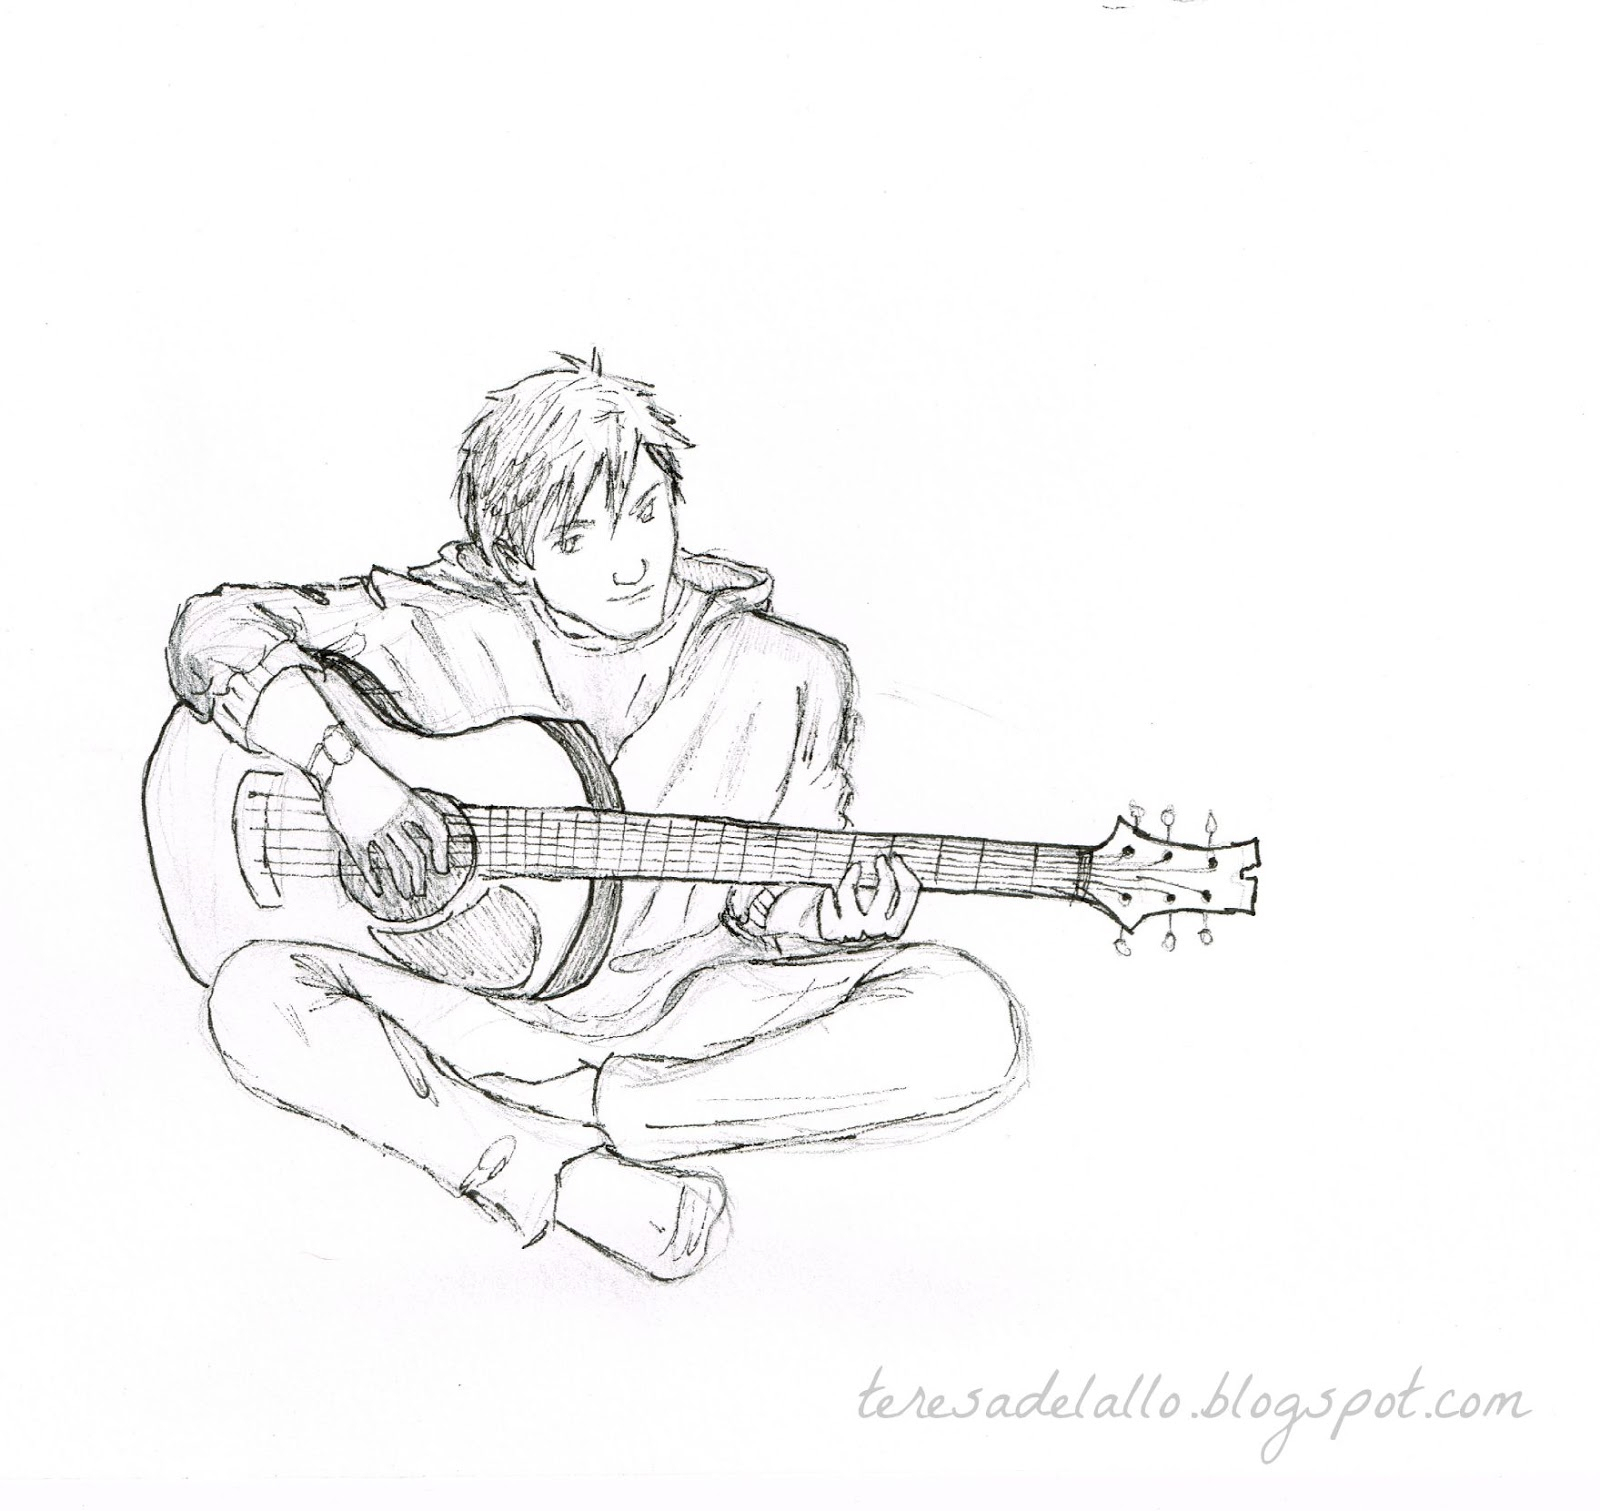 1600x1511 sad boy guitar pencil sketch anime sketches in pencil guy